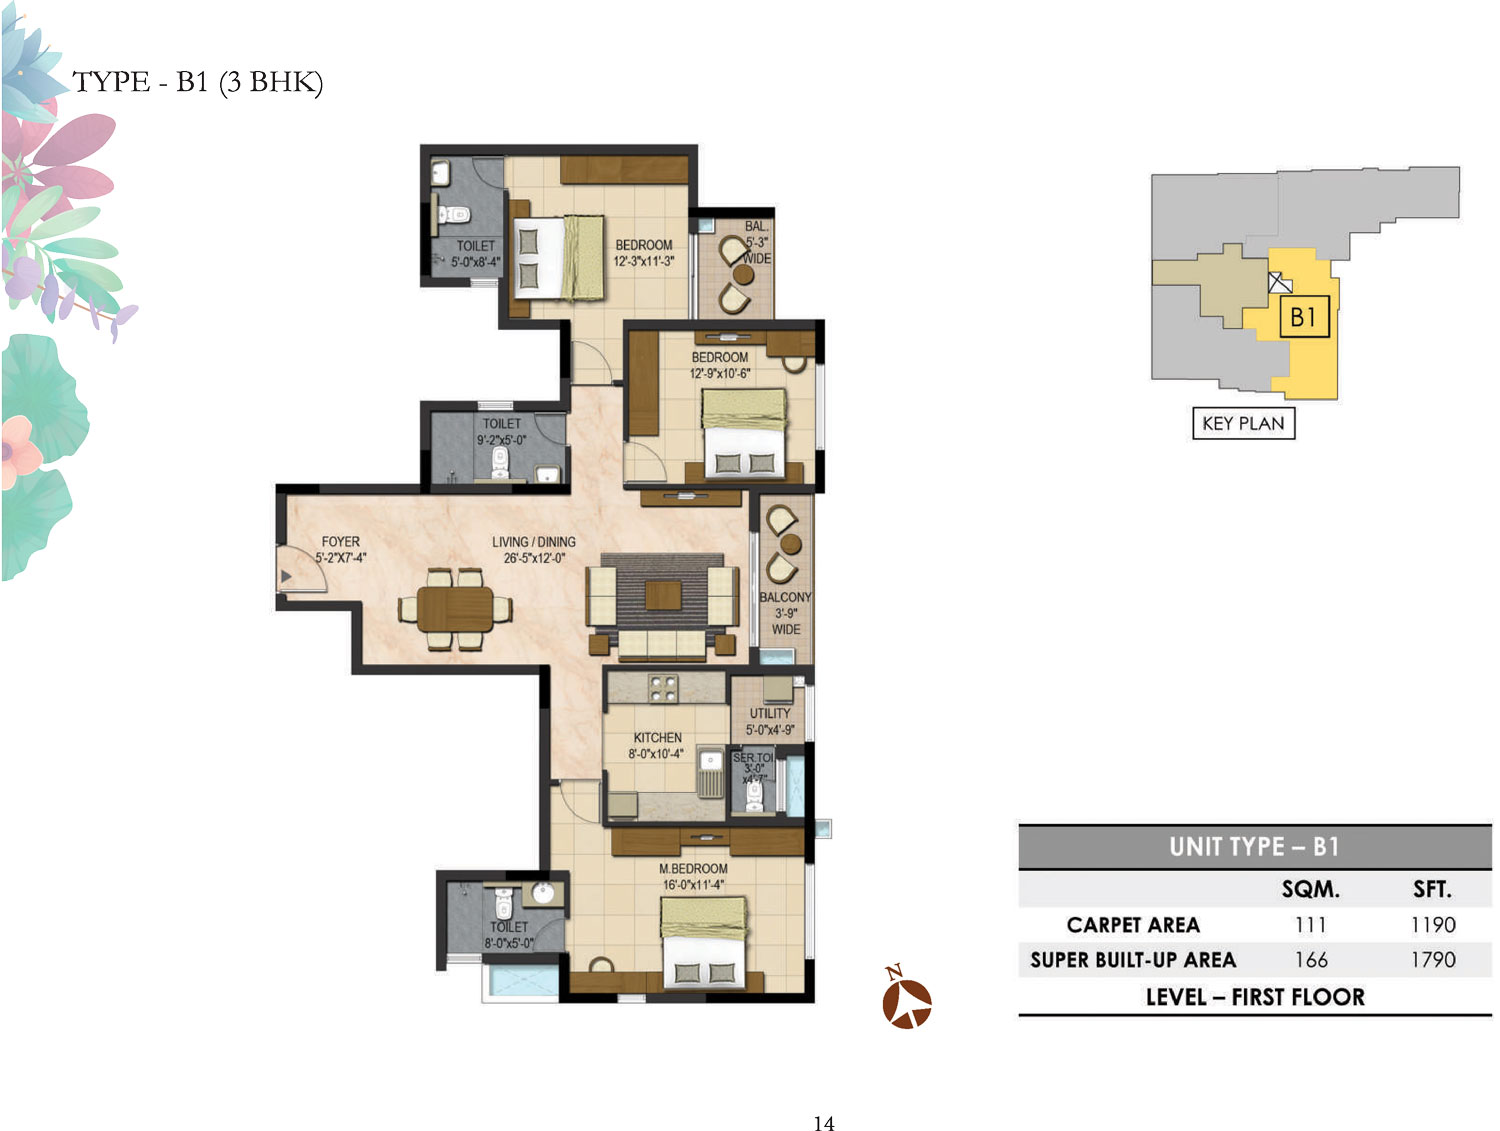 Type B1 - 3 Bed - 1790 Sq Ft